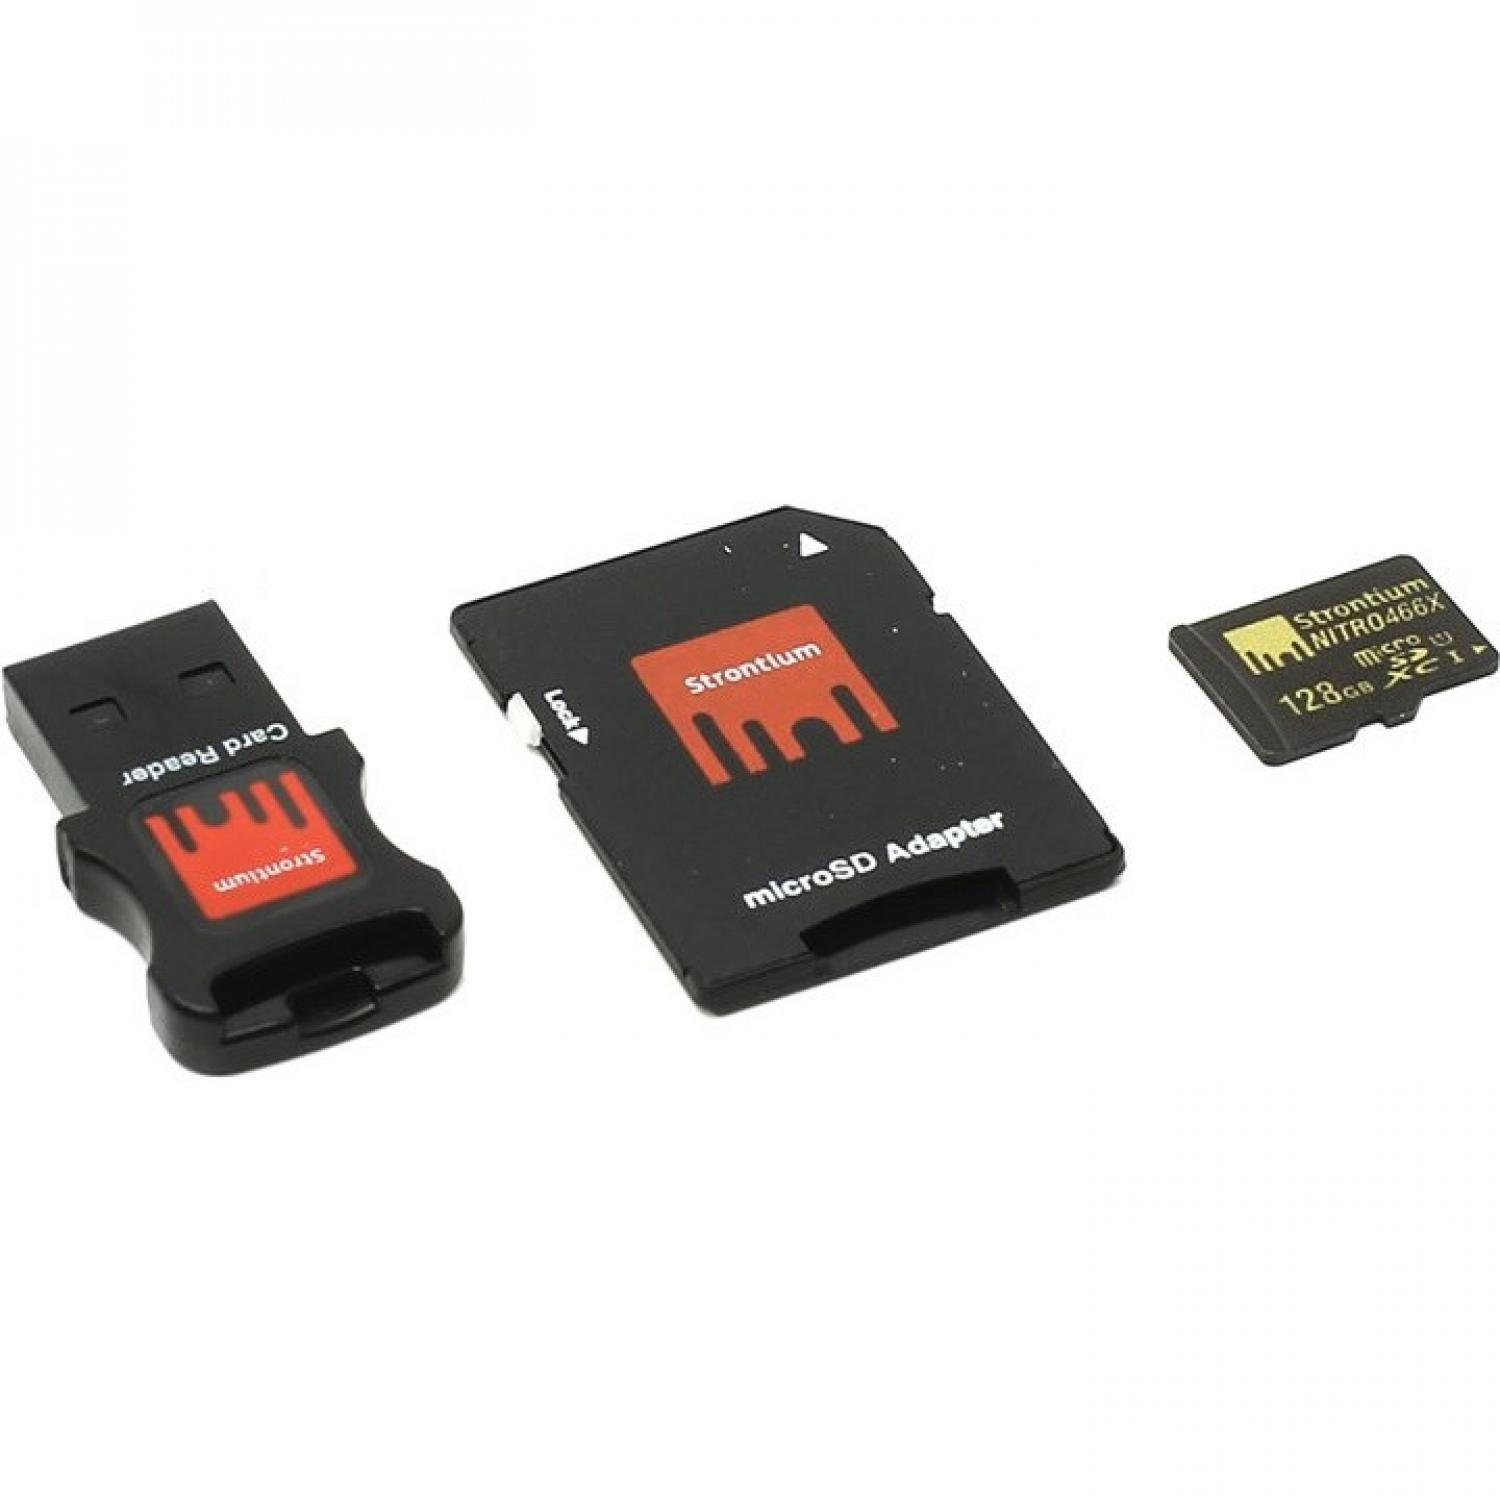 Strontium Nitro 466X MicroSDHC/XC Class 10 with Adapter & Card Reader